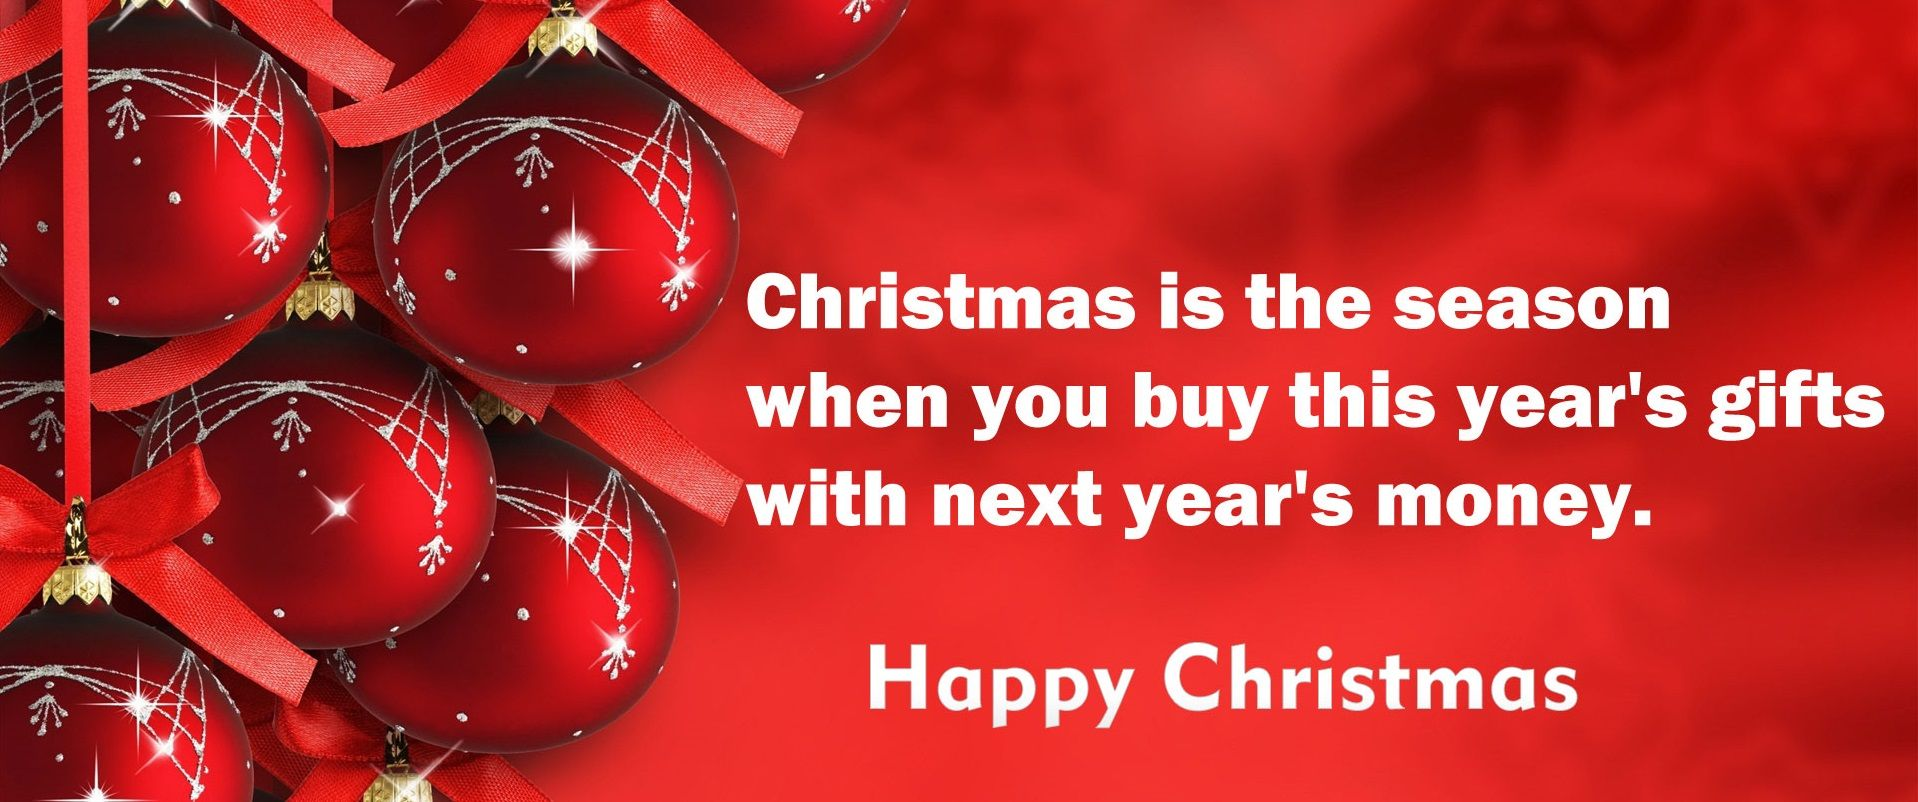 Happy christmas greetings quote happy new year pinterest happy christmas greetings quote m4hsunfo